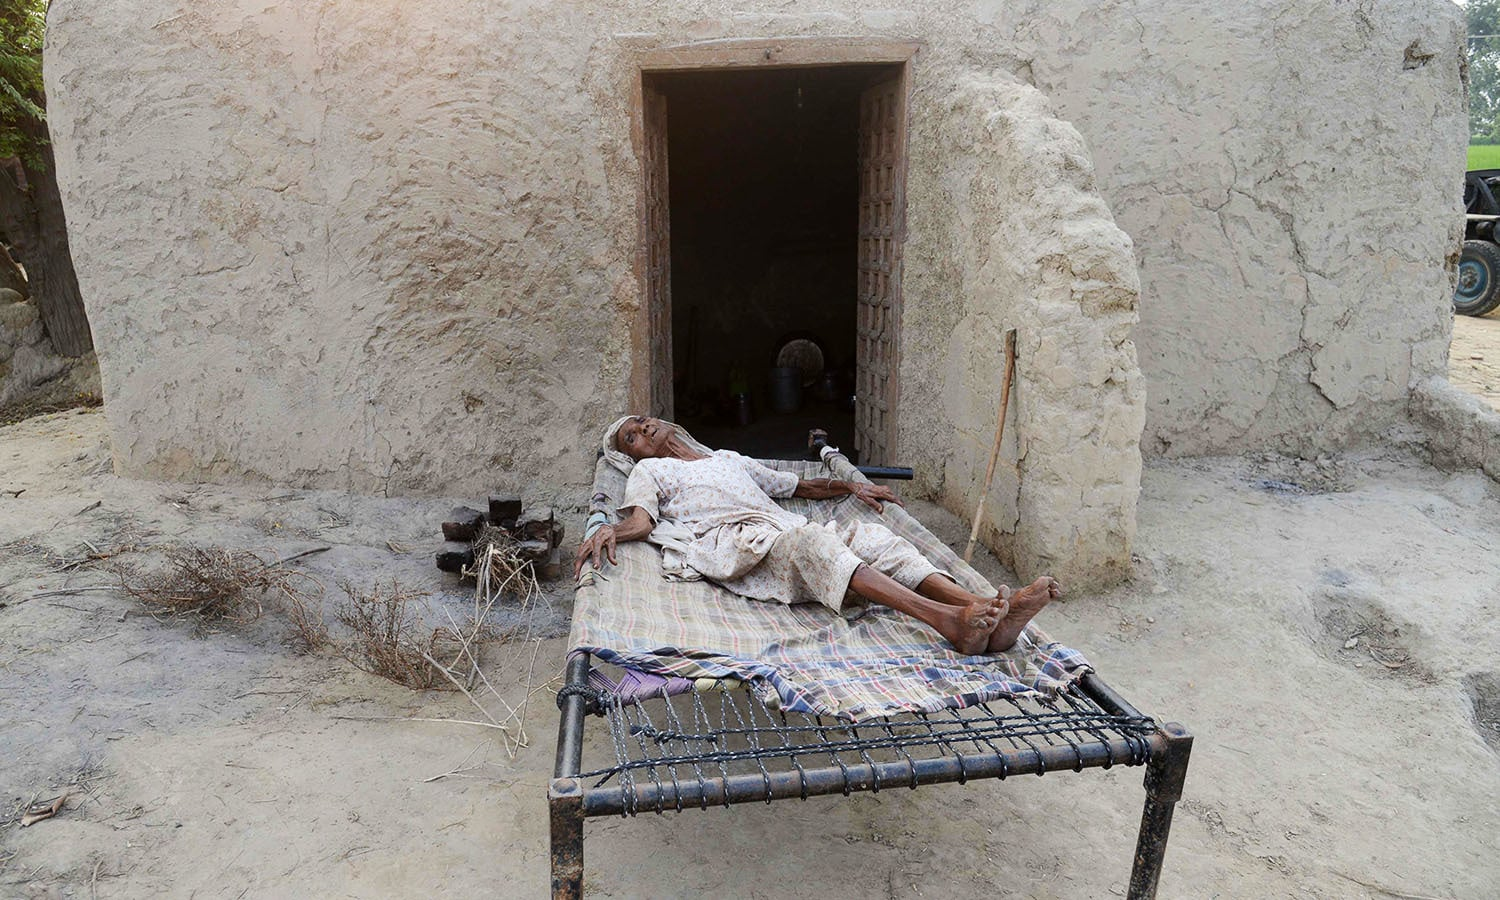 Elderly Indian villager, Teeja Kaur takes a rest on a bed at the border village Dauke. — AFP